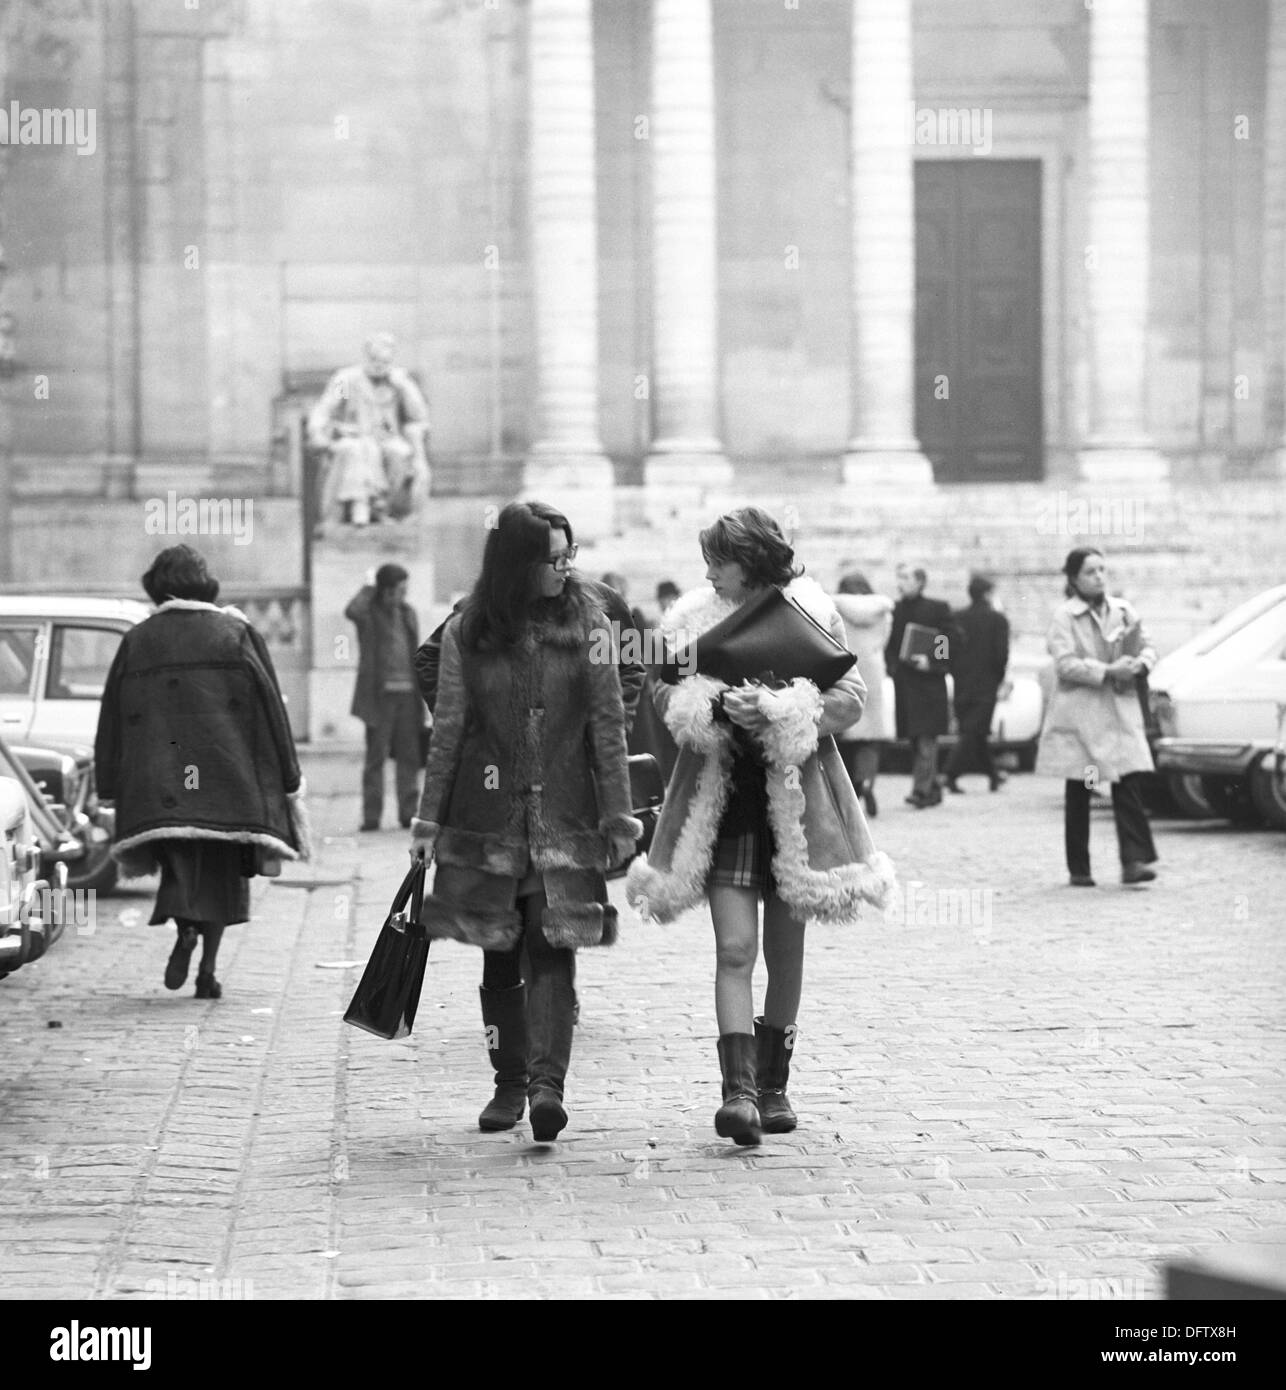 Two students leave the grounds of teh Sorbonne University in the quarter Quartier Latin in Paris, France, in November 1970. The Quartier Latin is the traditional student quarter in Paris and is located directly at the Sorbonne University. Photo: Wilfried Glienke - Stock Image